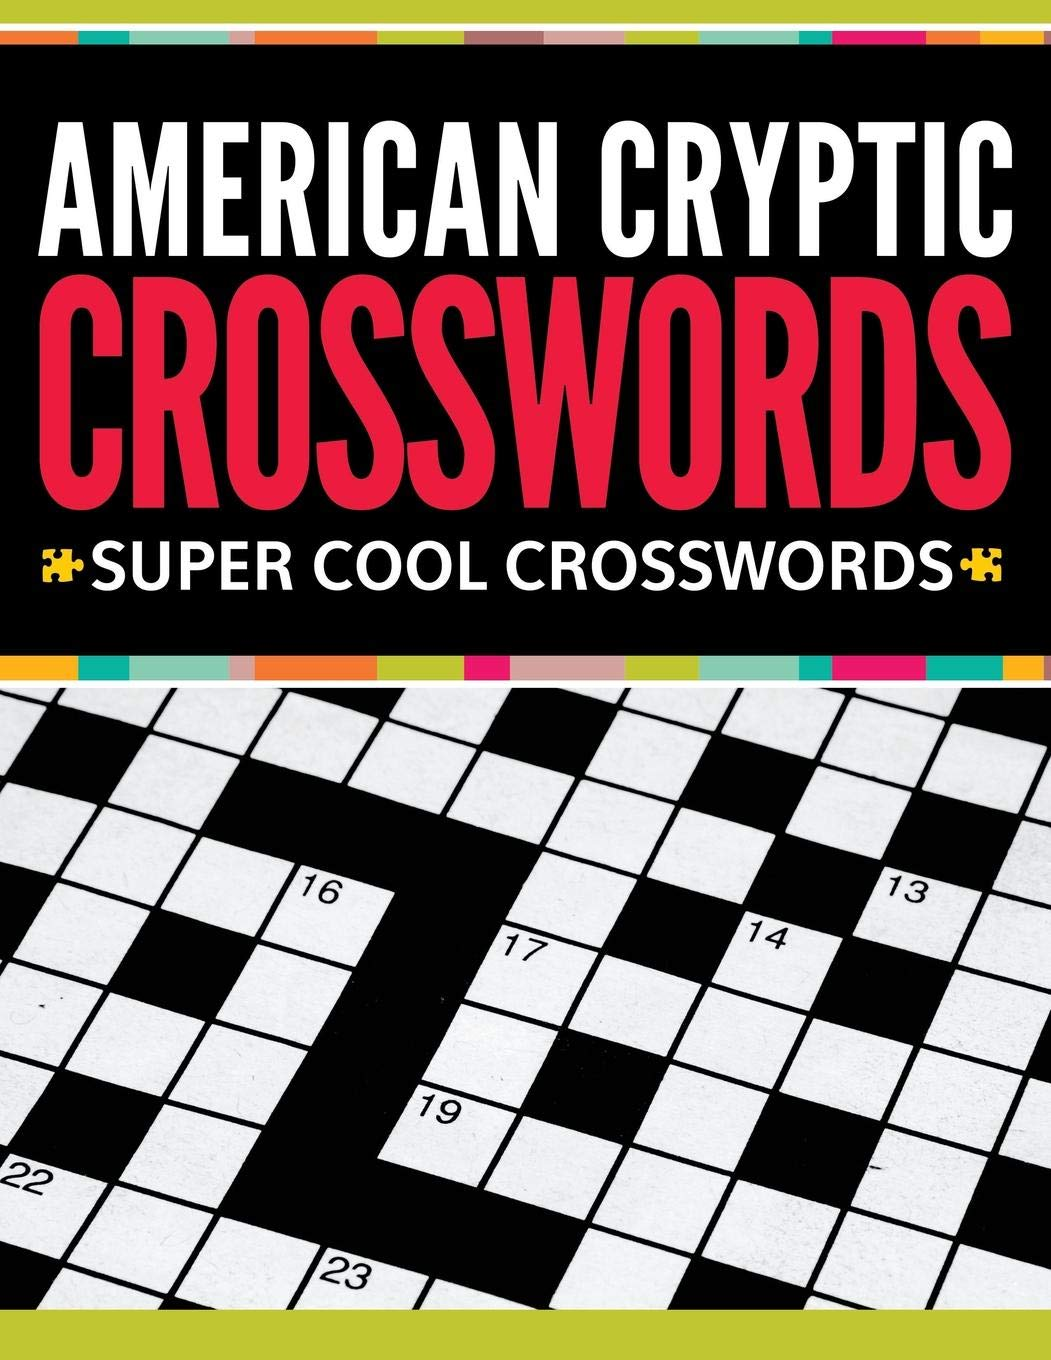 photograph regarding Cryptic Crosswords Printable titled American Cryptic Crosswords: Tremendous Awesome Crosswords: Fast